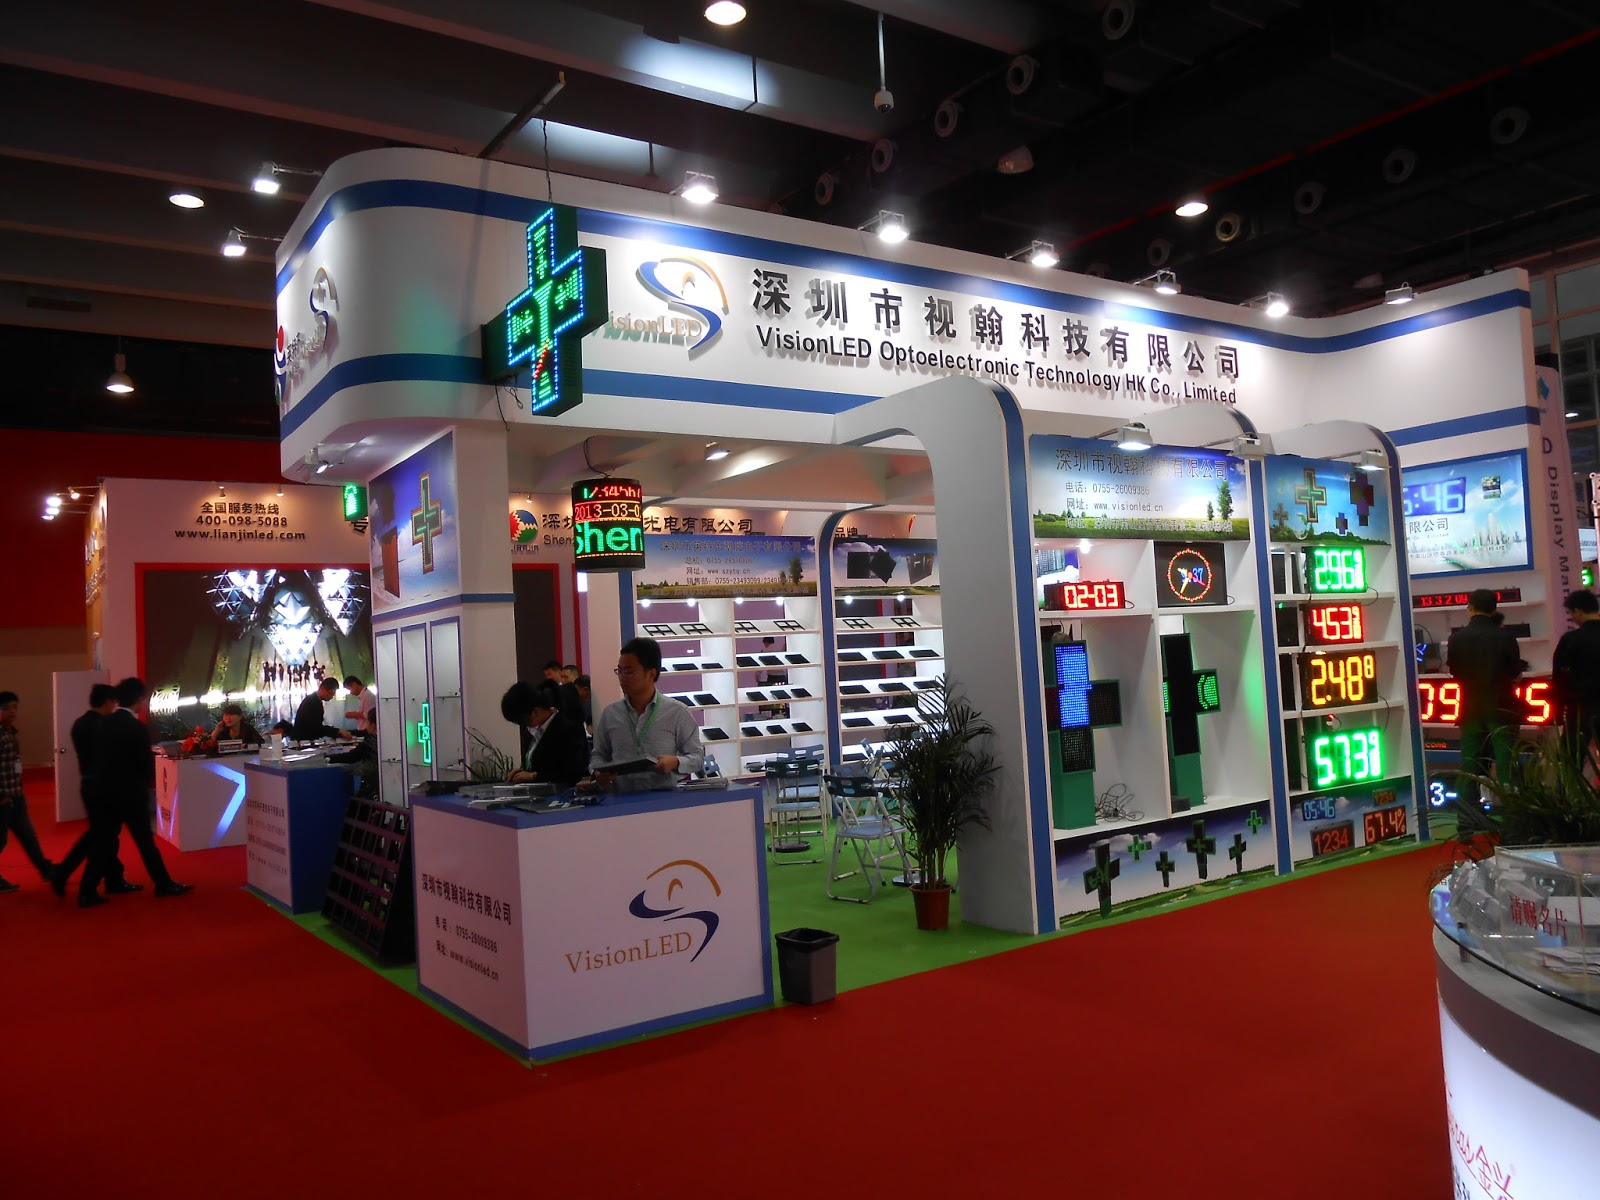 Exhibition Booth Signage : Petroled booth on the led china exhibition led pharmacy